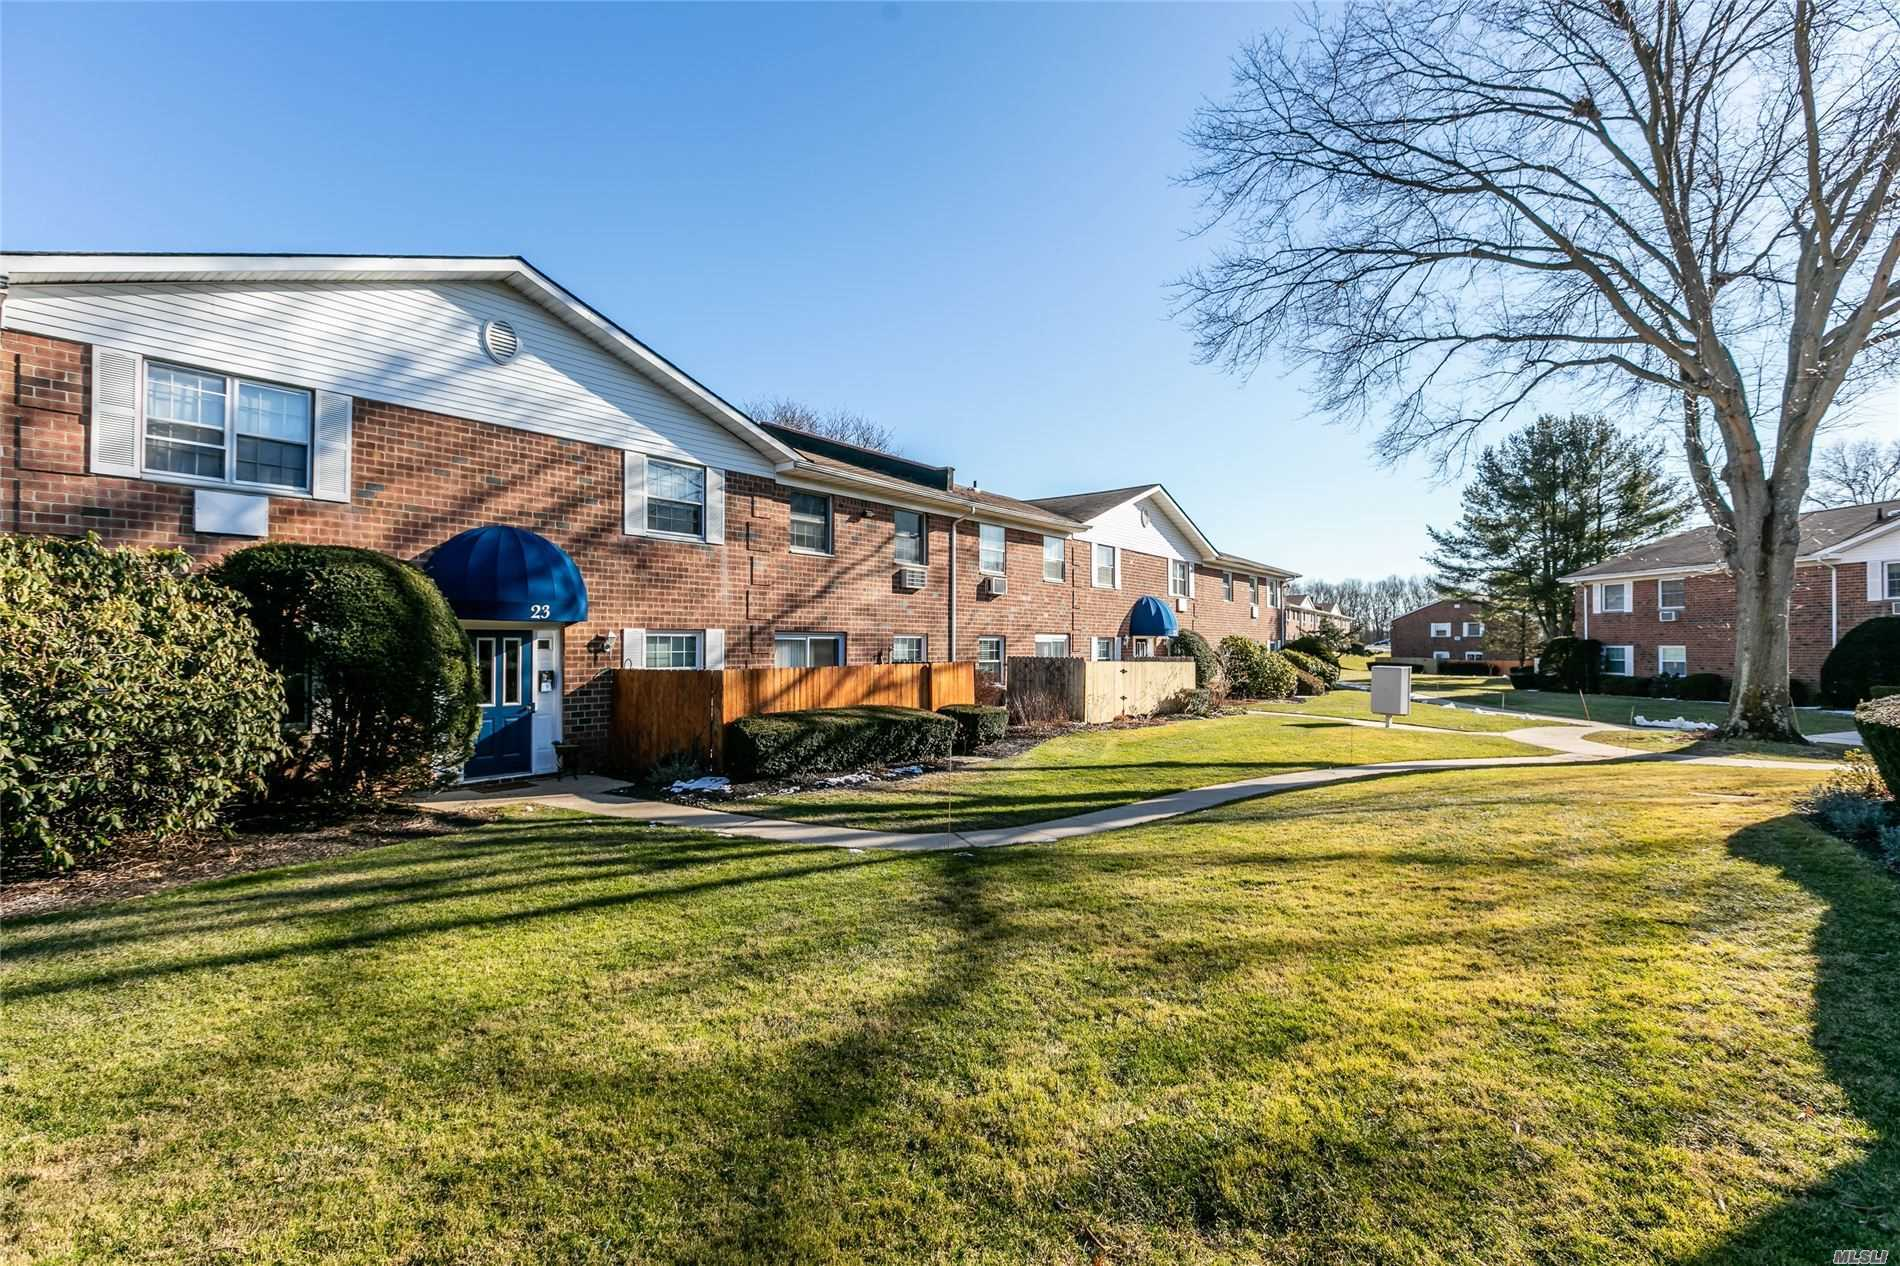 460 Old Town Rd, 23L - Pt.Jefferson Sta, New York